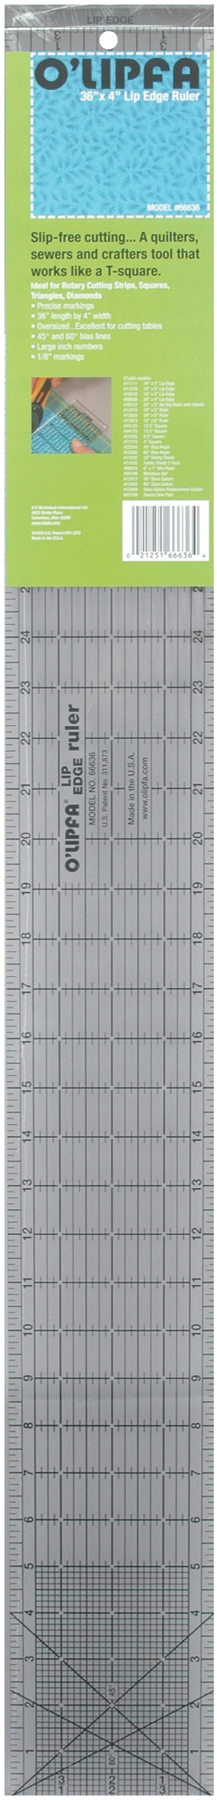 8X8 June Tailor Around The Block Ruler